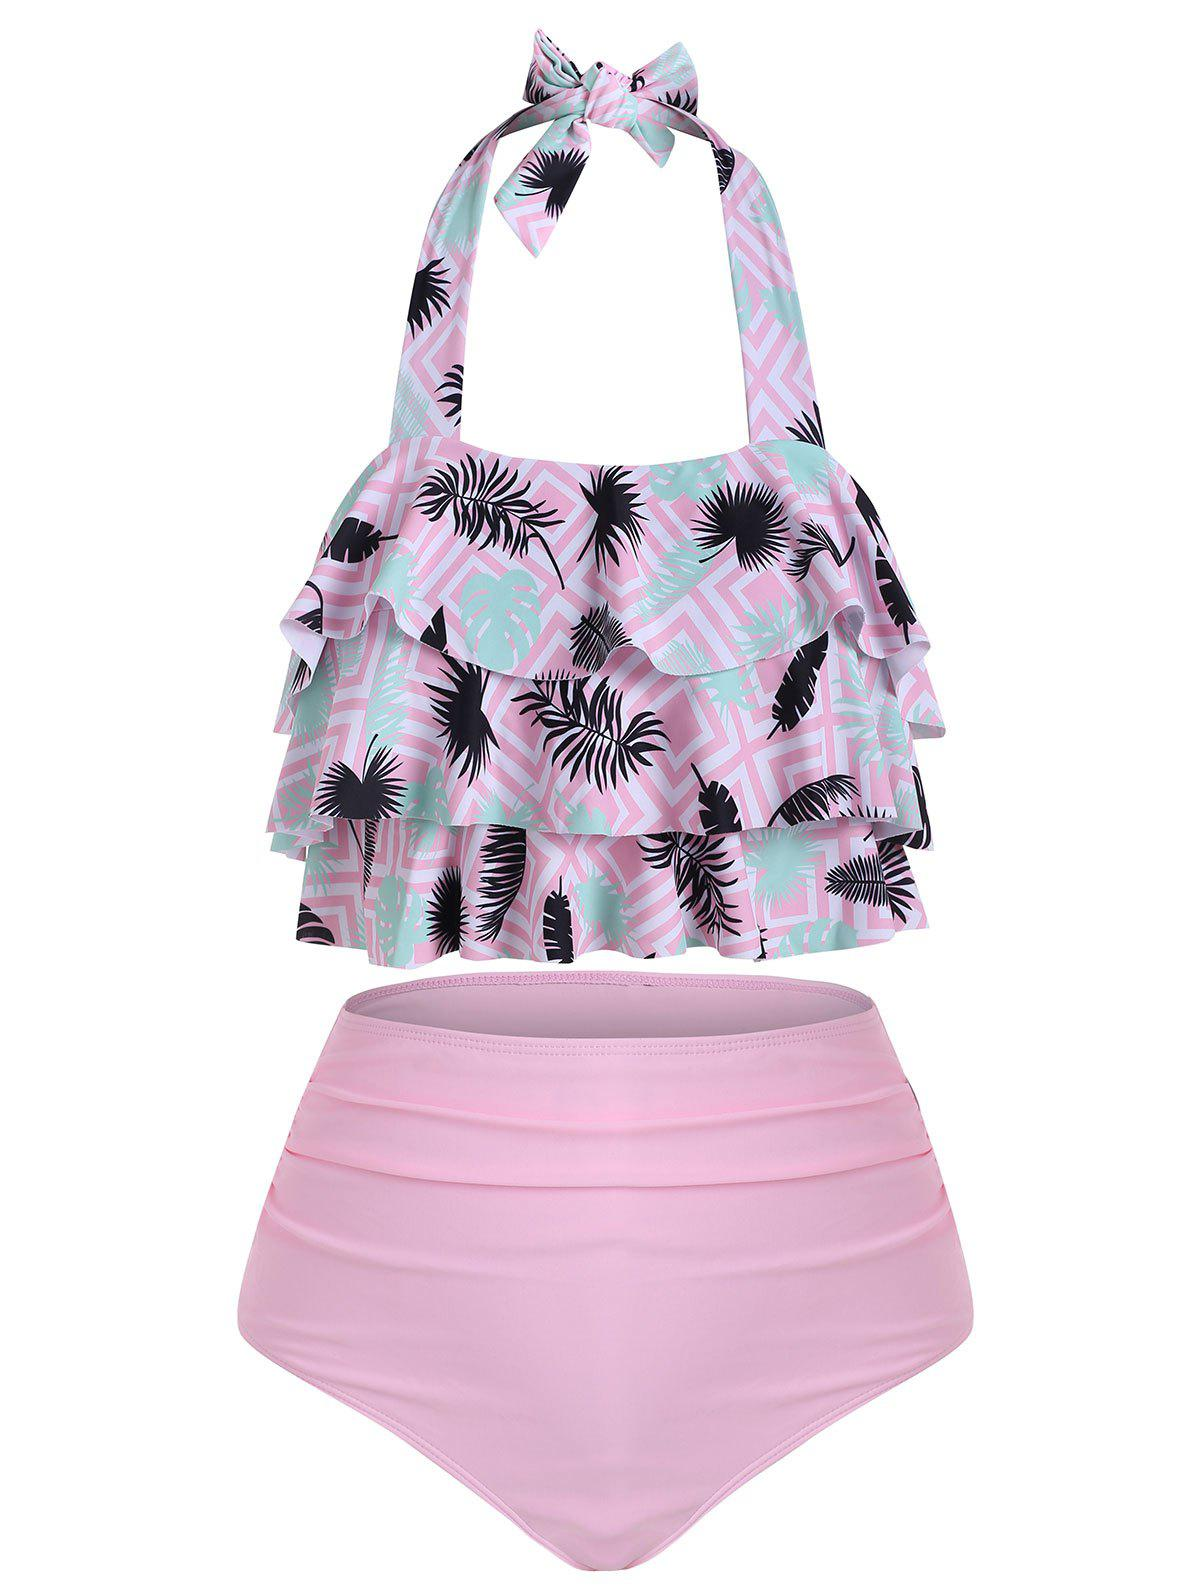 Tiered Flounces Tiger Leaves Print High Waisted Tankini Swimsuit, Pink